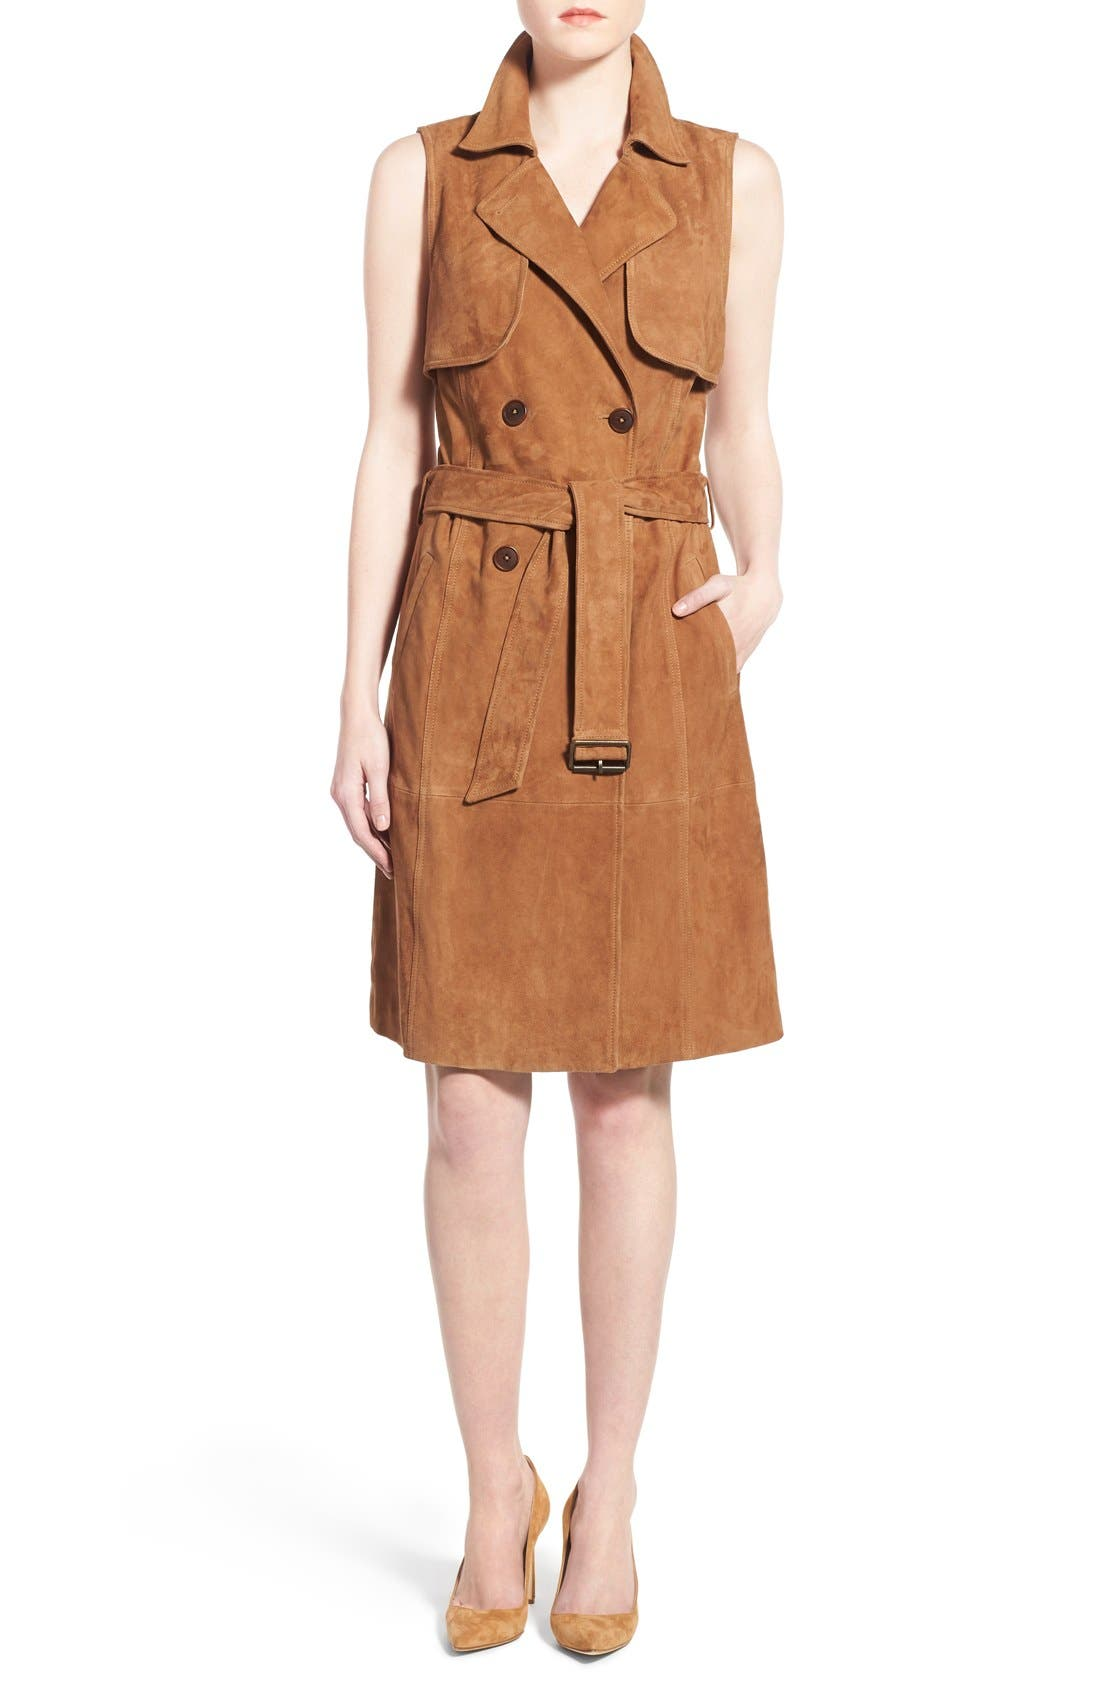 OLIVIA PALERMO + CHELSEA28,                             Sleeveless Suede Trench Dress,                             Main thumbnail 1, color,                             235